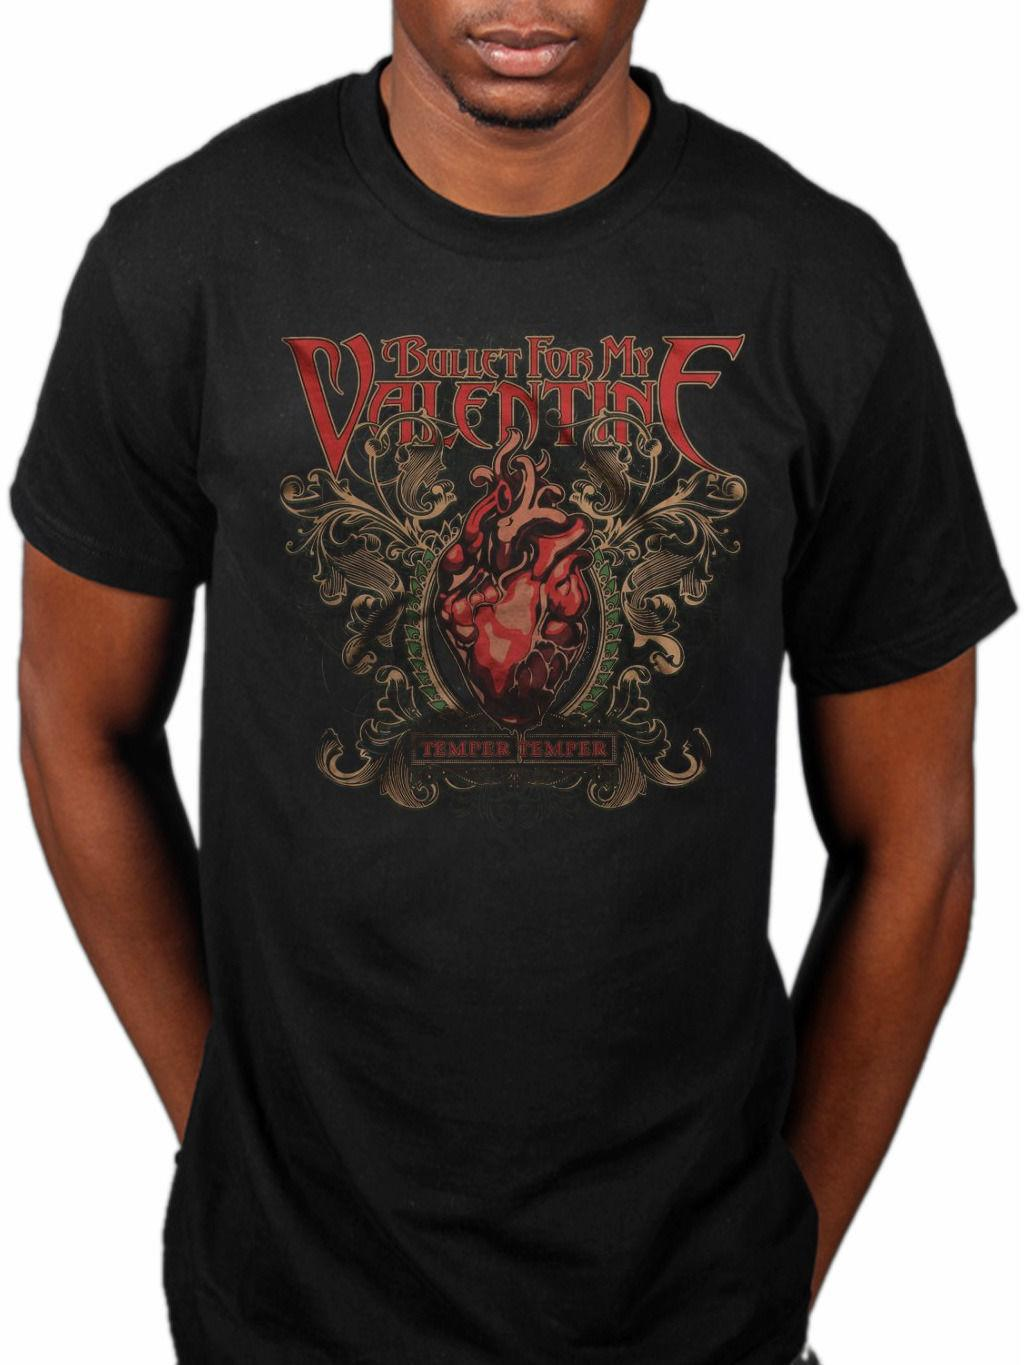 Bullet For My Valentine Temper Temper T Shirt New Band Merch